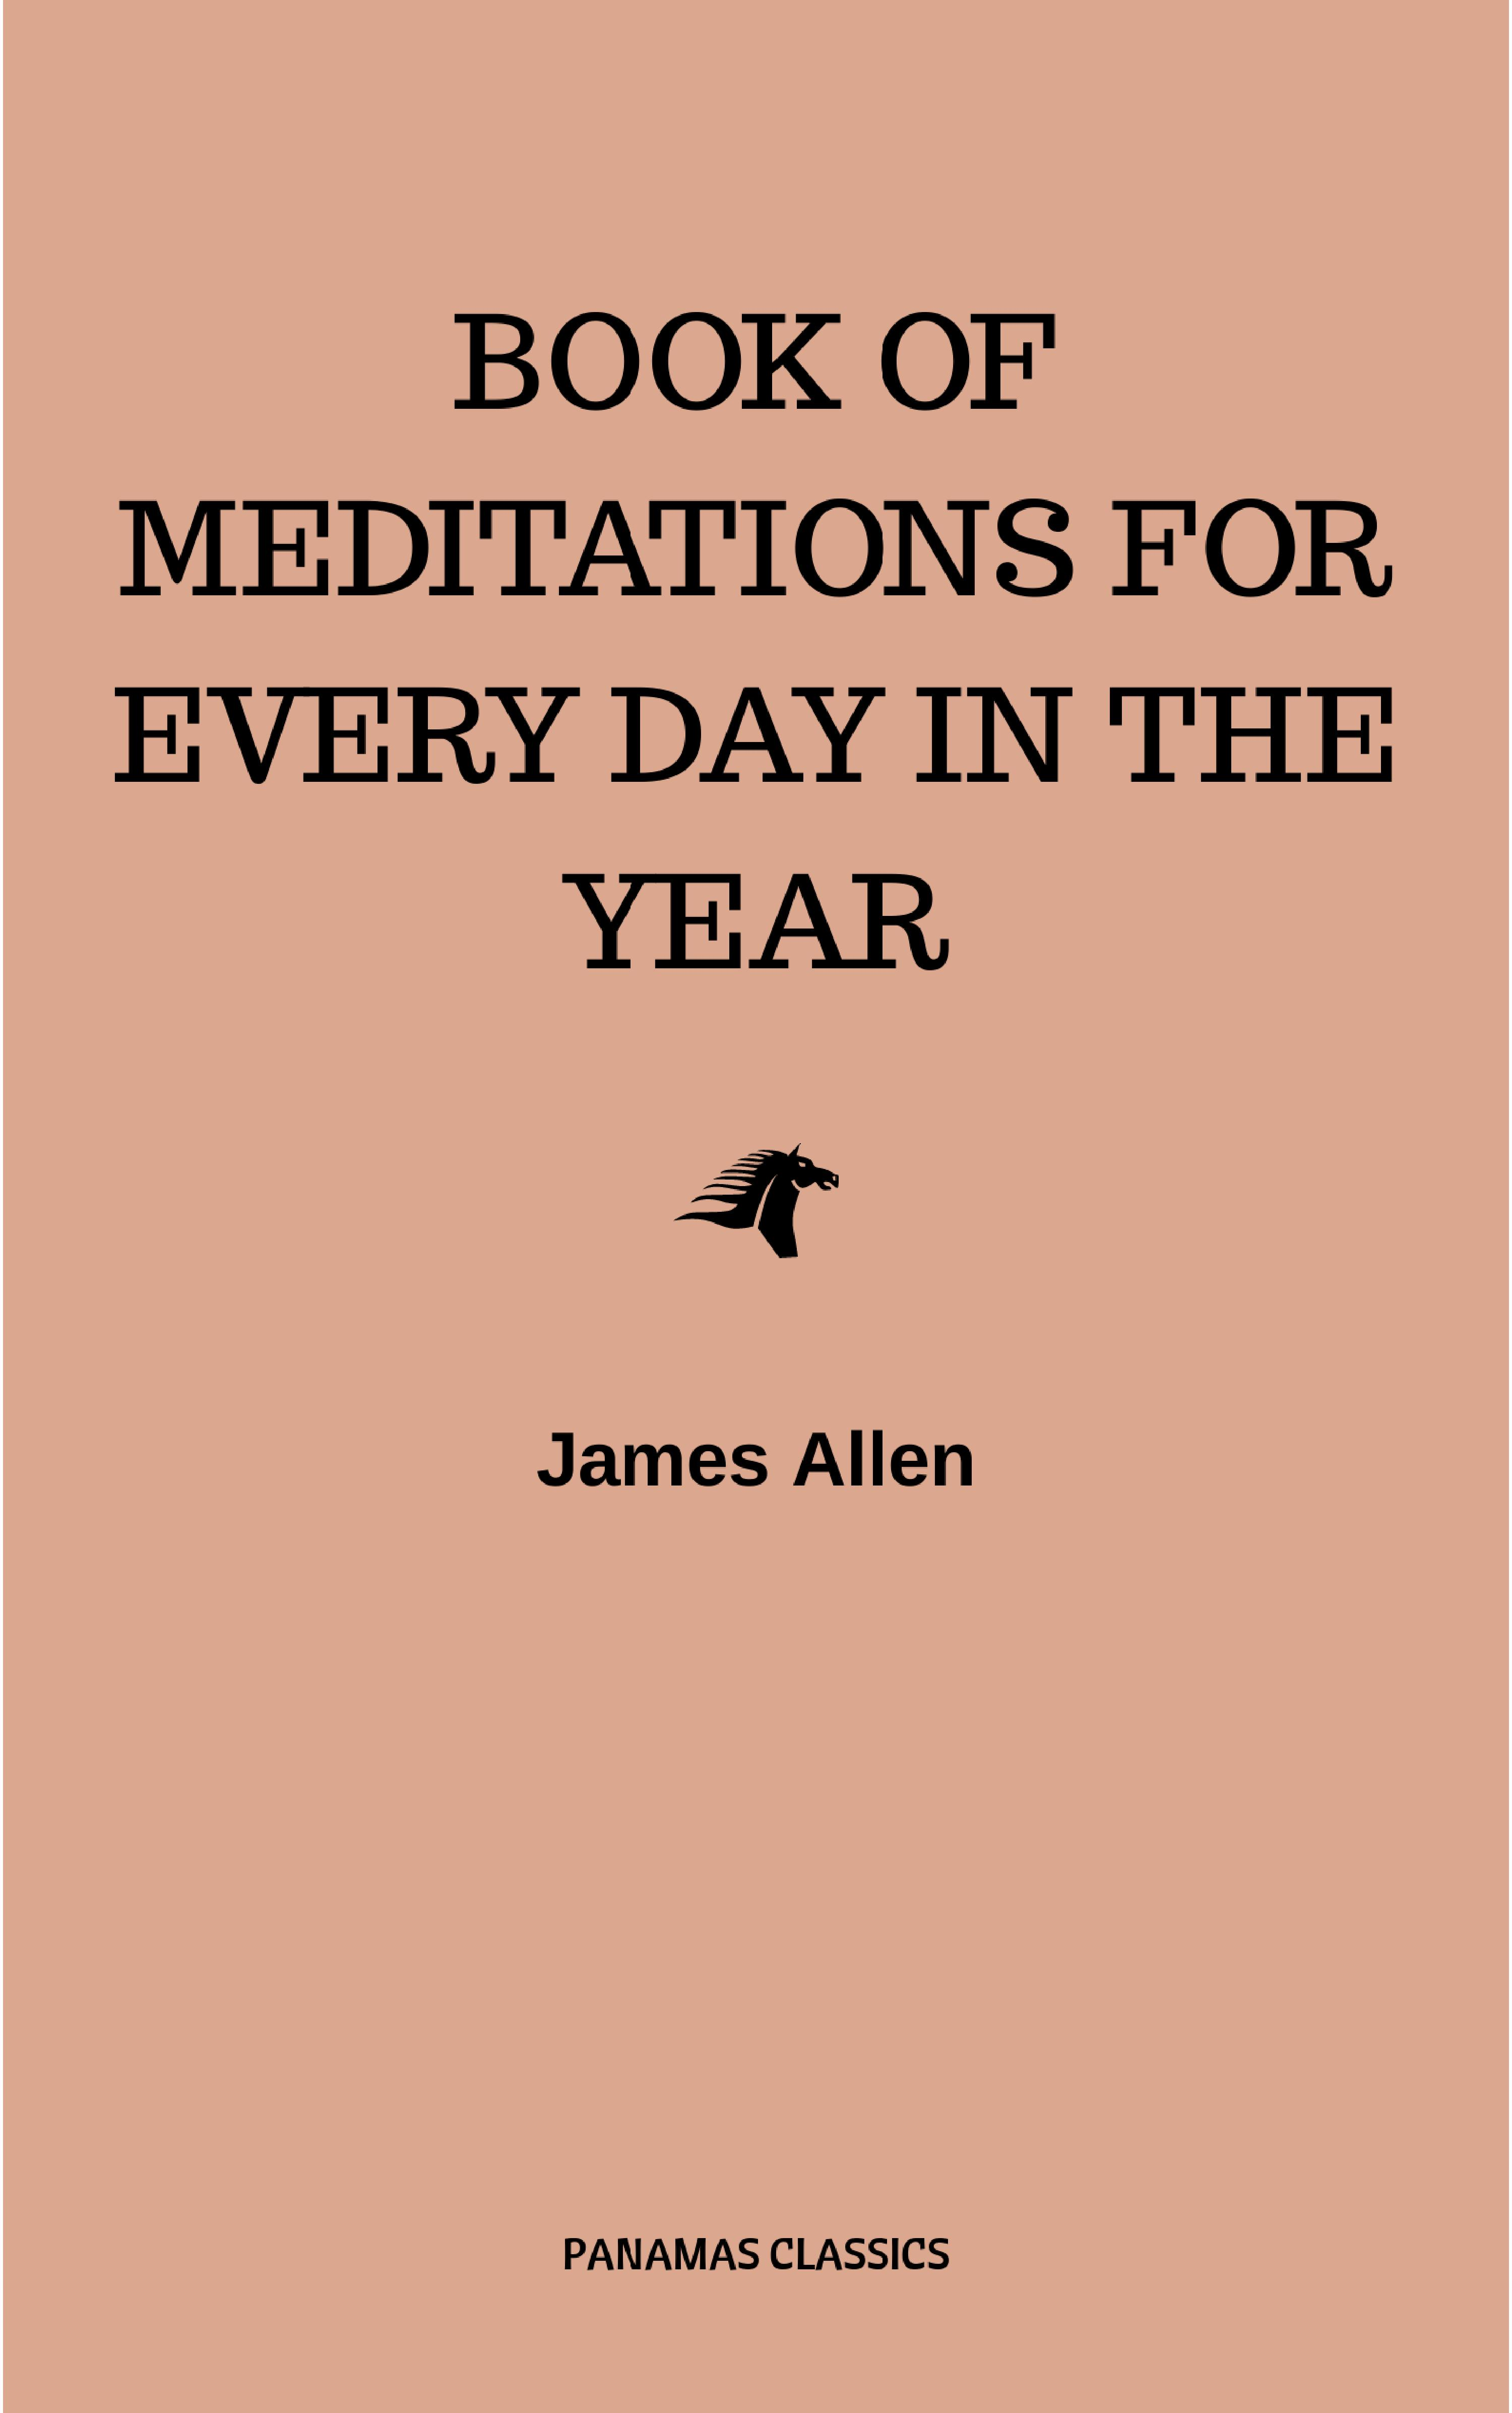 James Allen James Allen's Book Of Meditations For Every Day In The Year